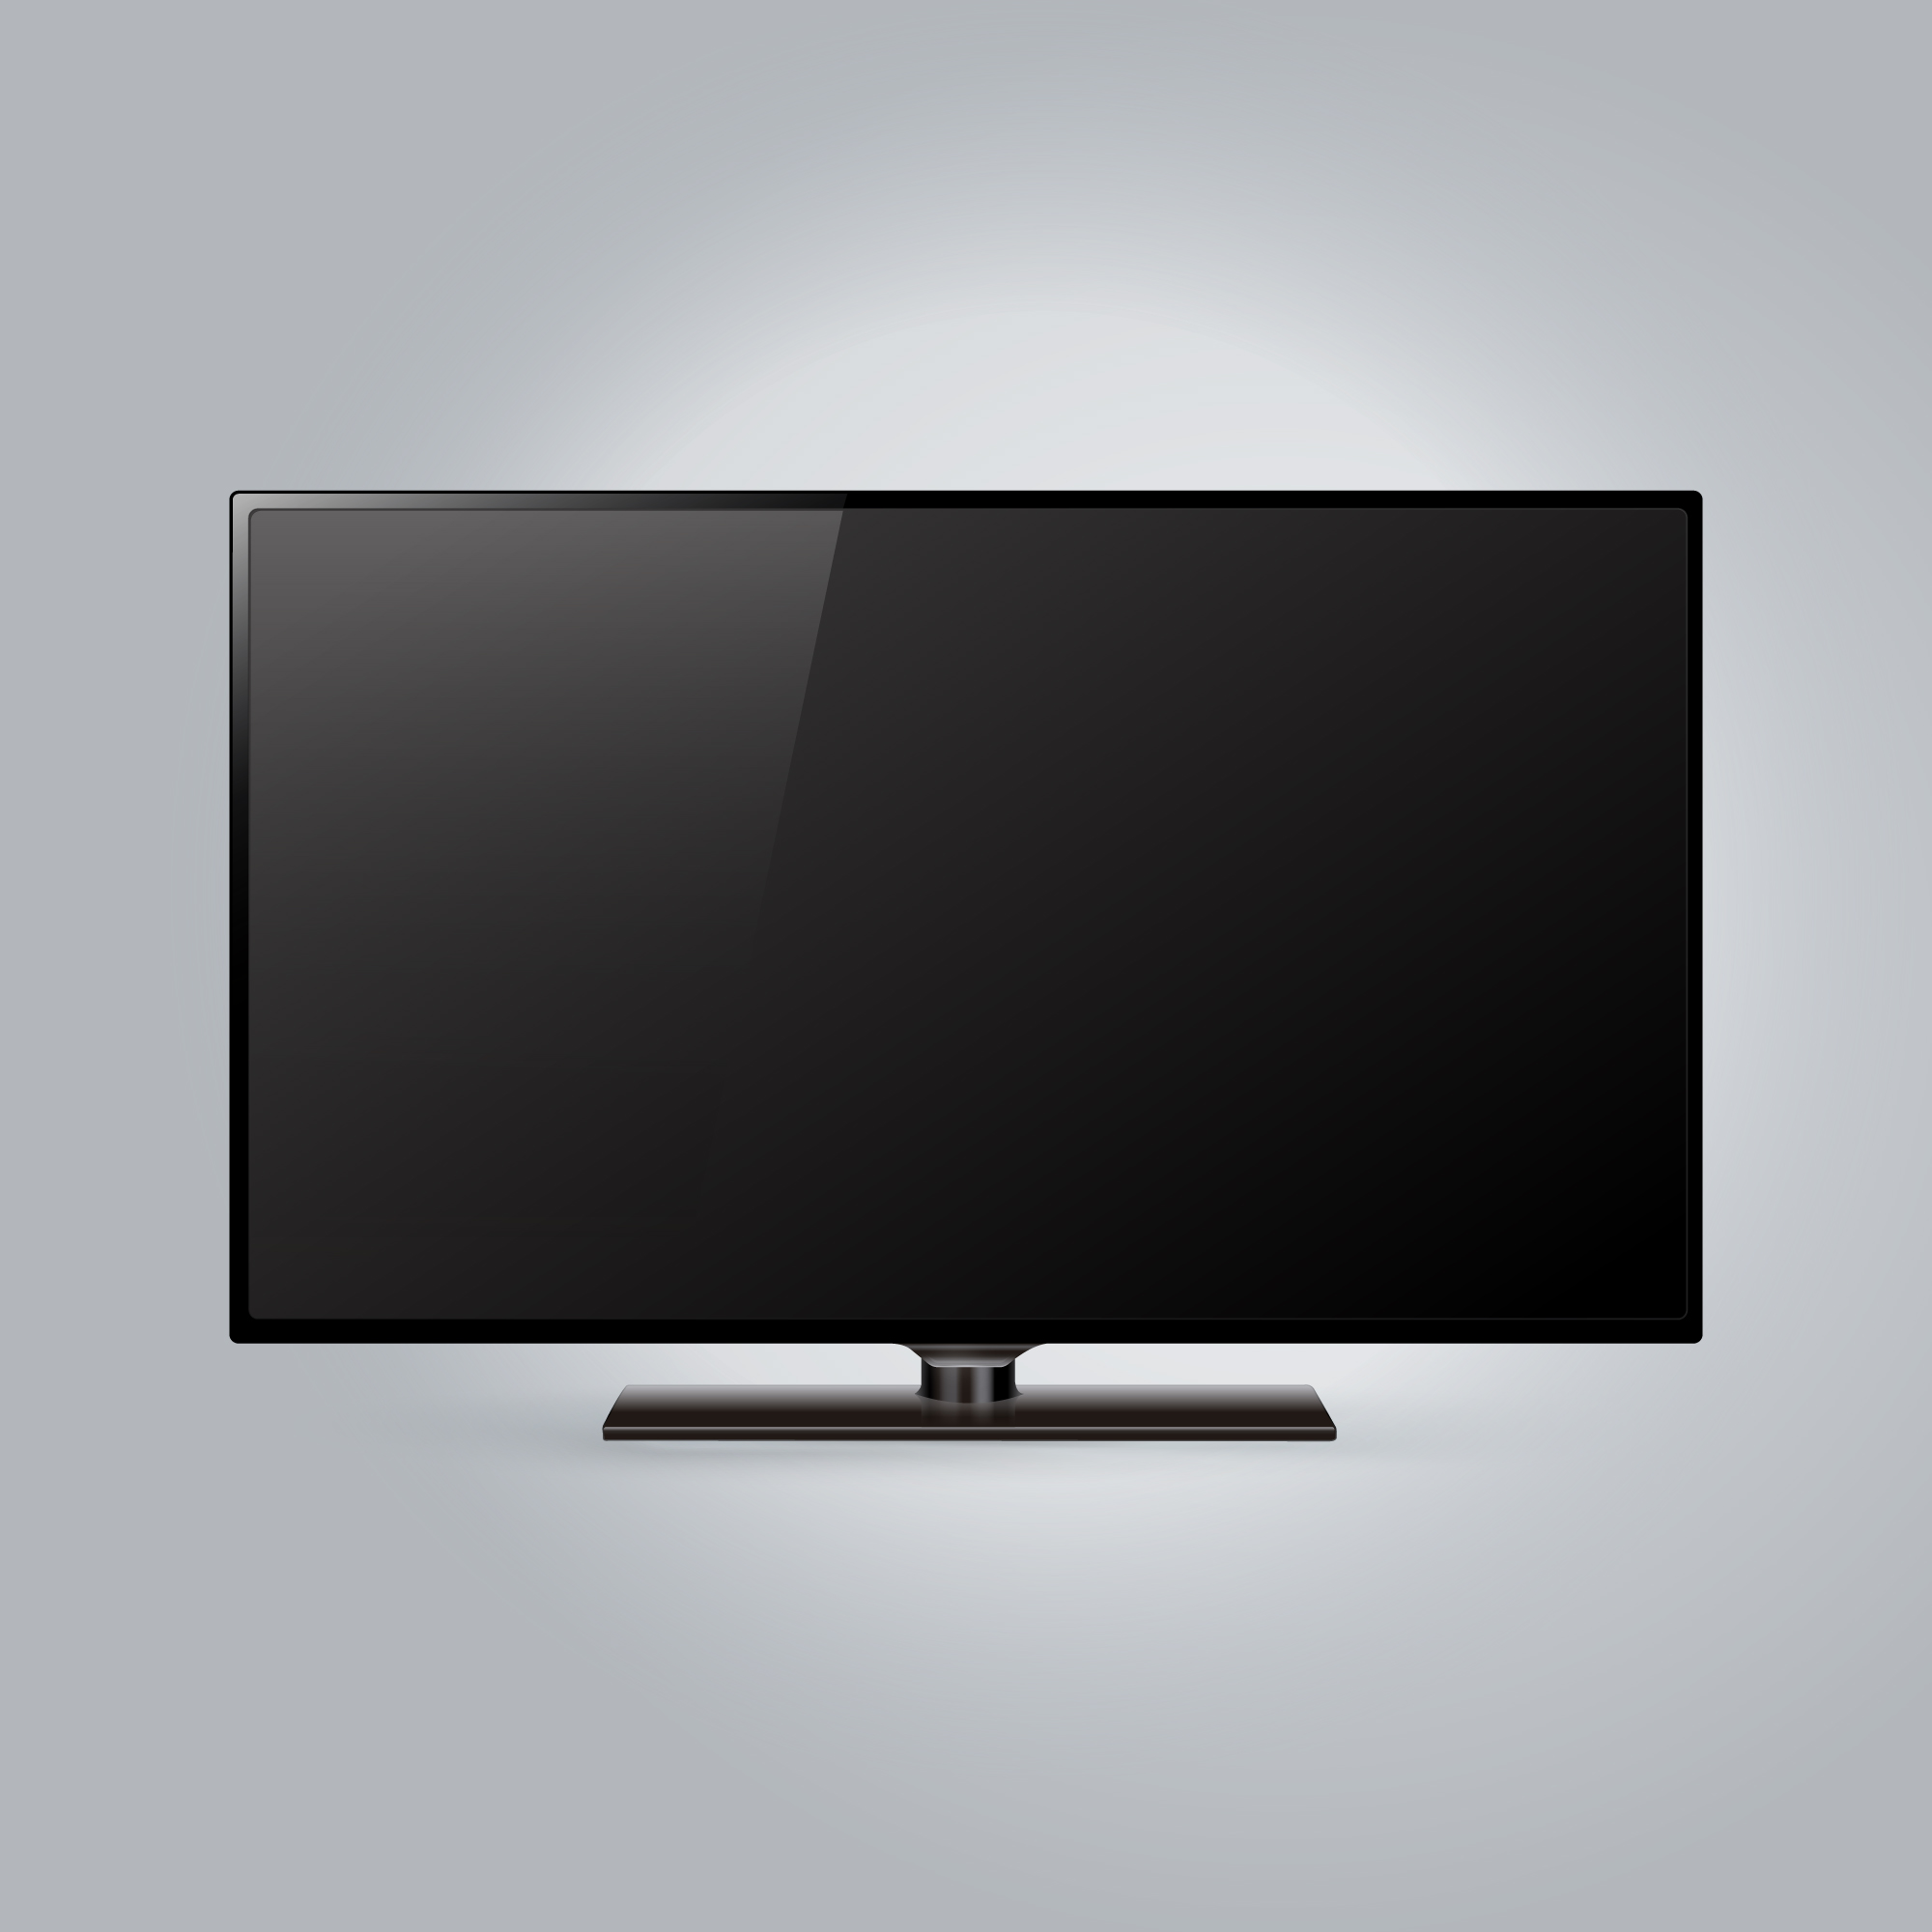 Tv template background